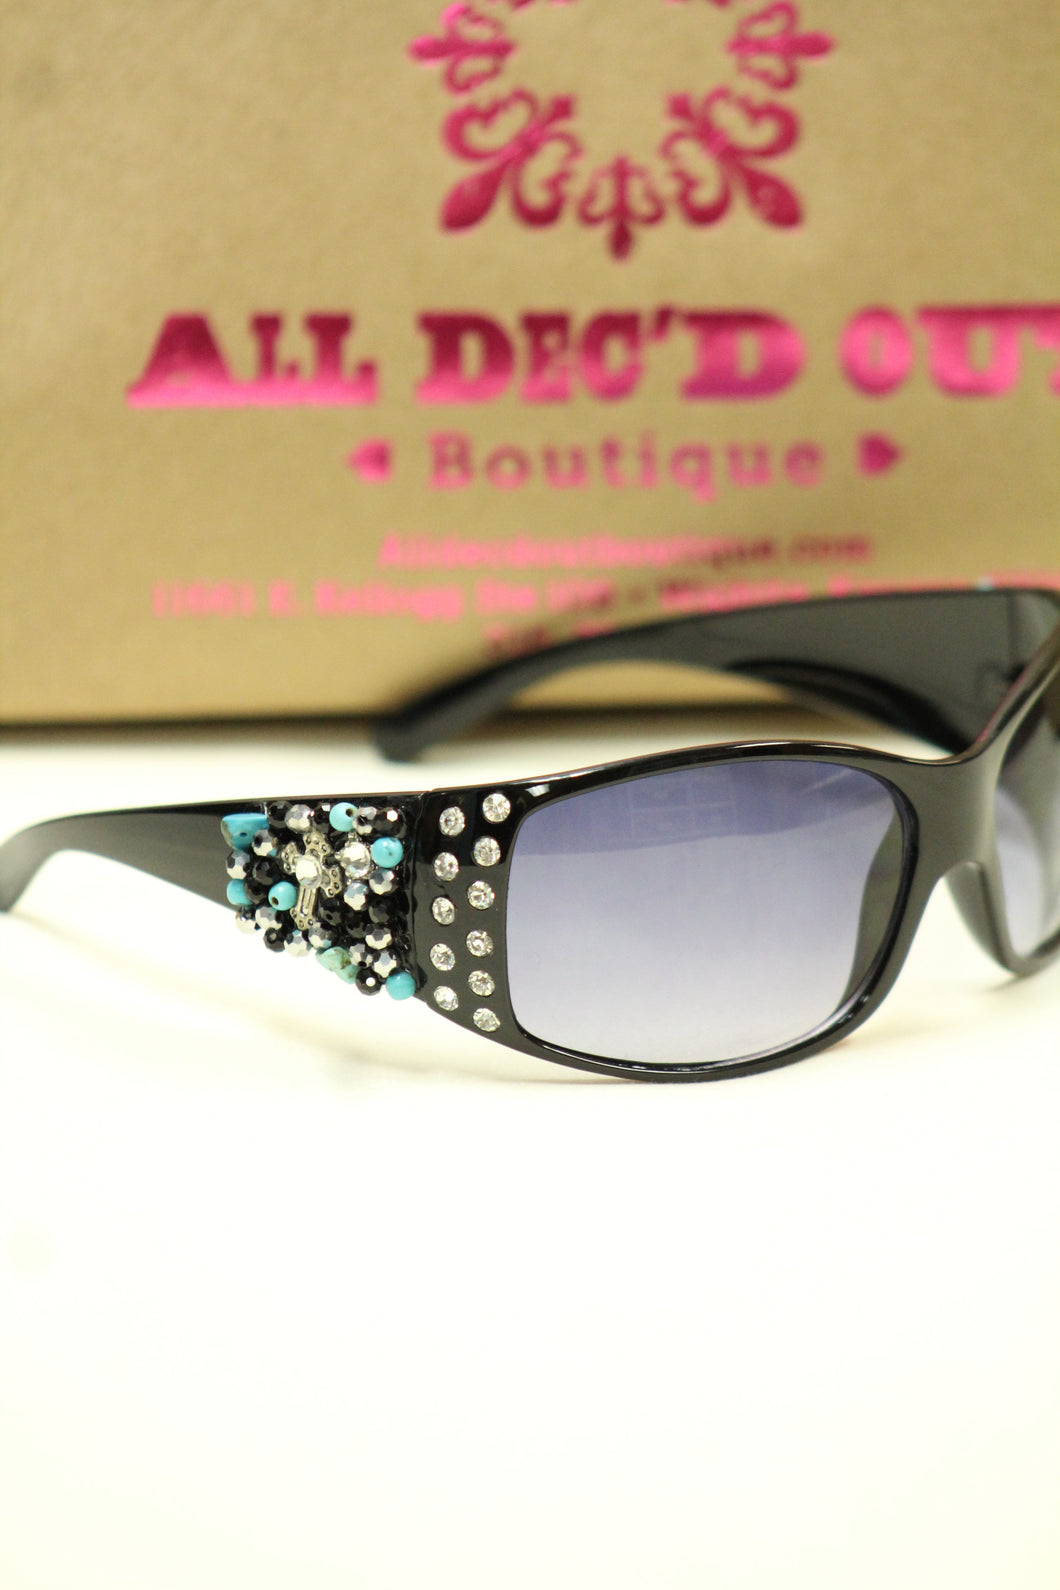 ADO | Customized Sunglasses Black with Turquoise Beads & Silver Cross - All Decd Out